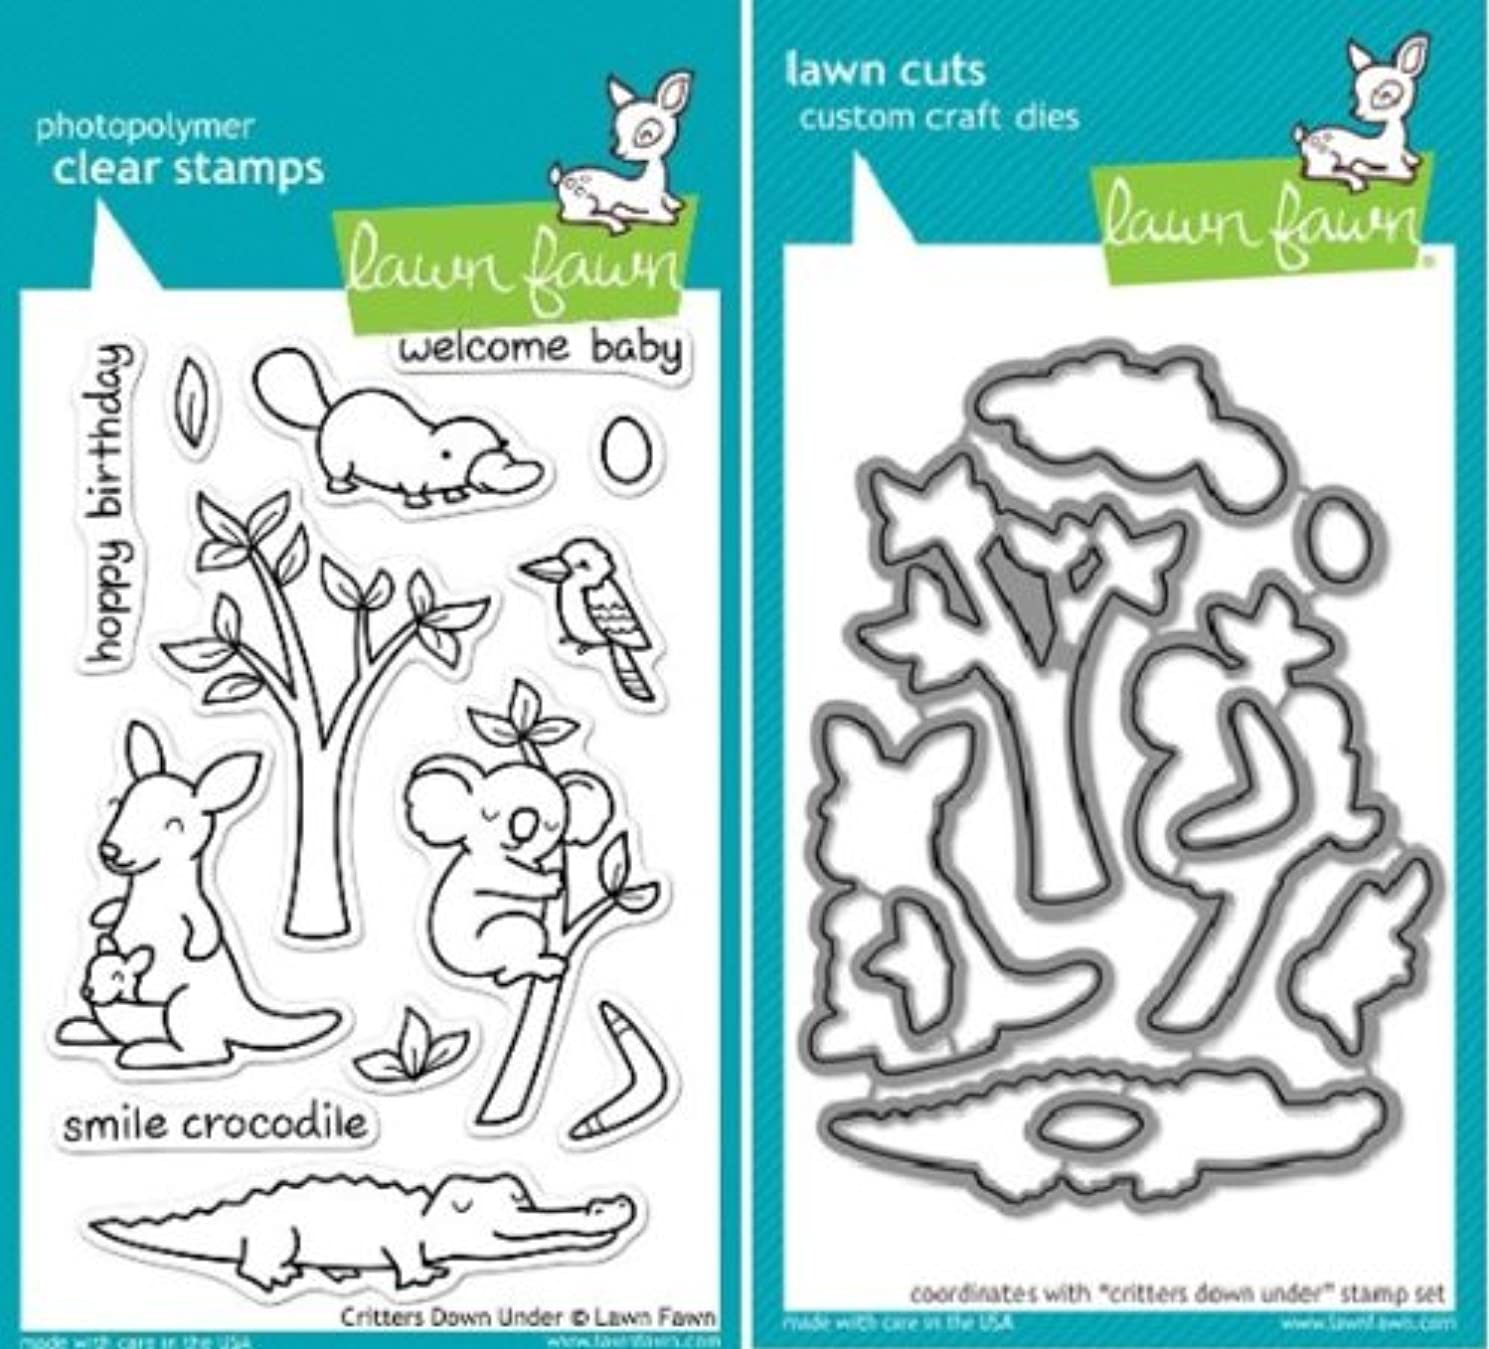 Lawn Fawn Critters Down Under Clear Stamp and Die Set - Includes One Each of LF391 (Stamp) & LF684 (Die) - Custom Set